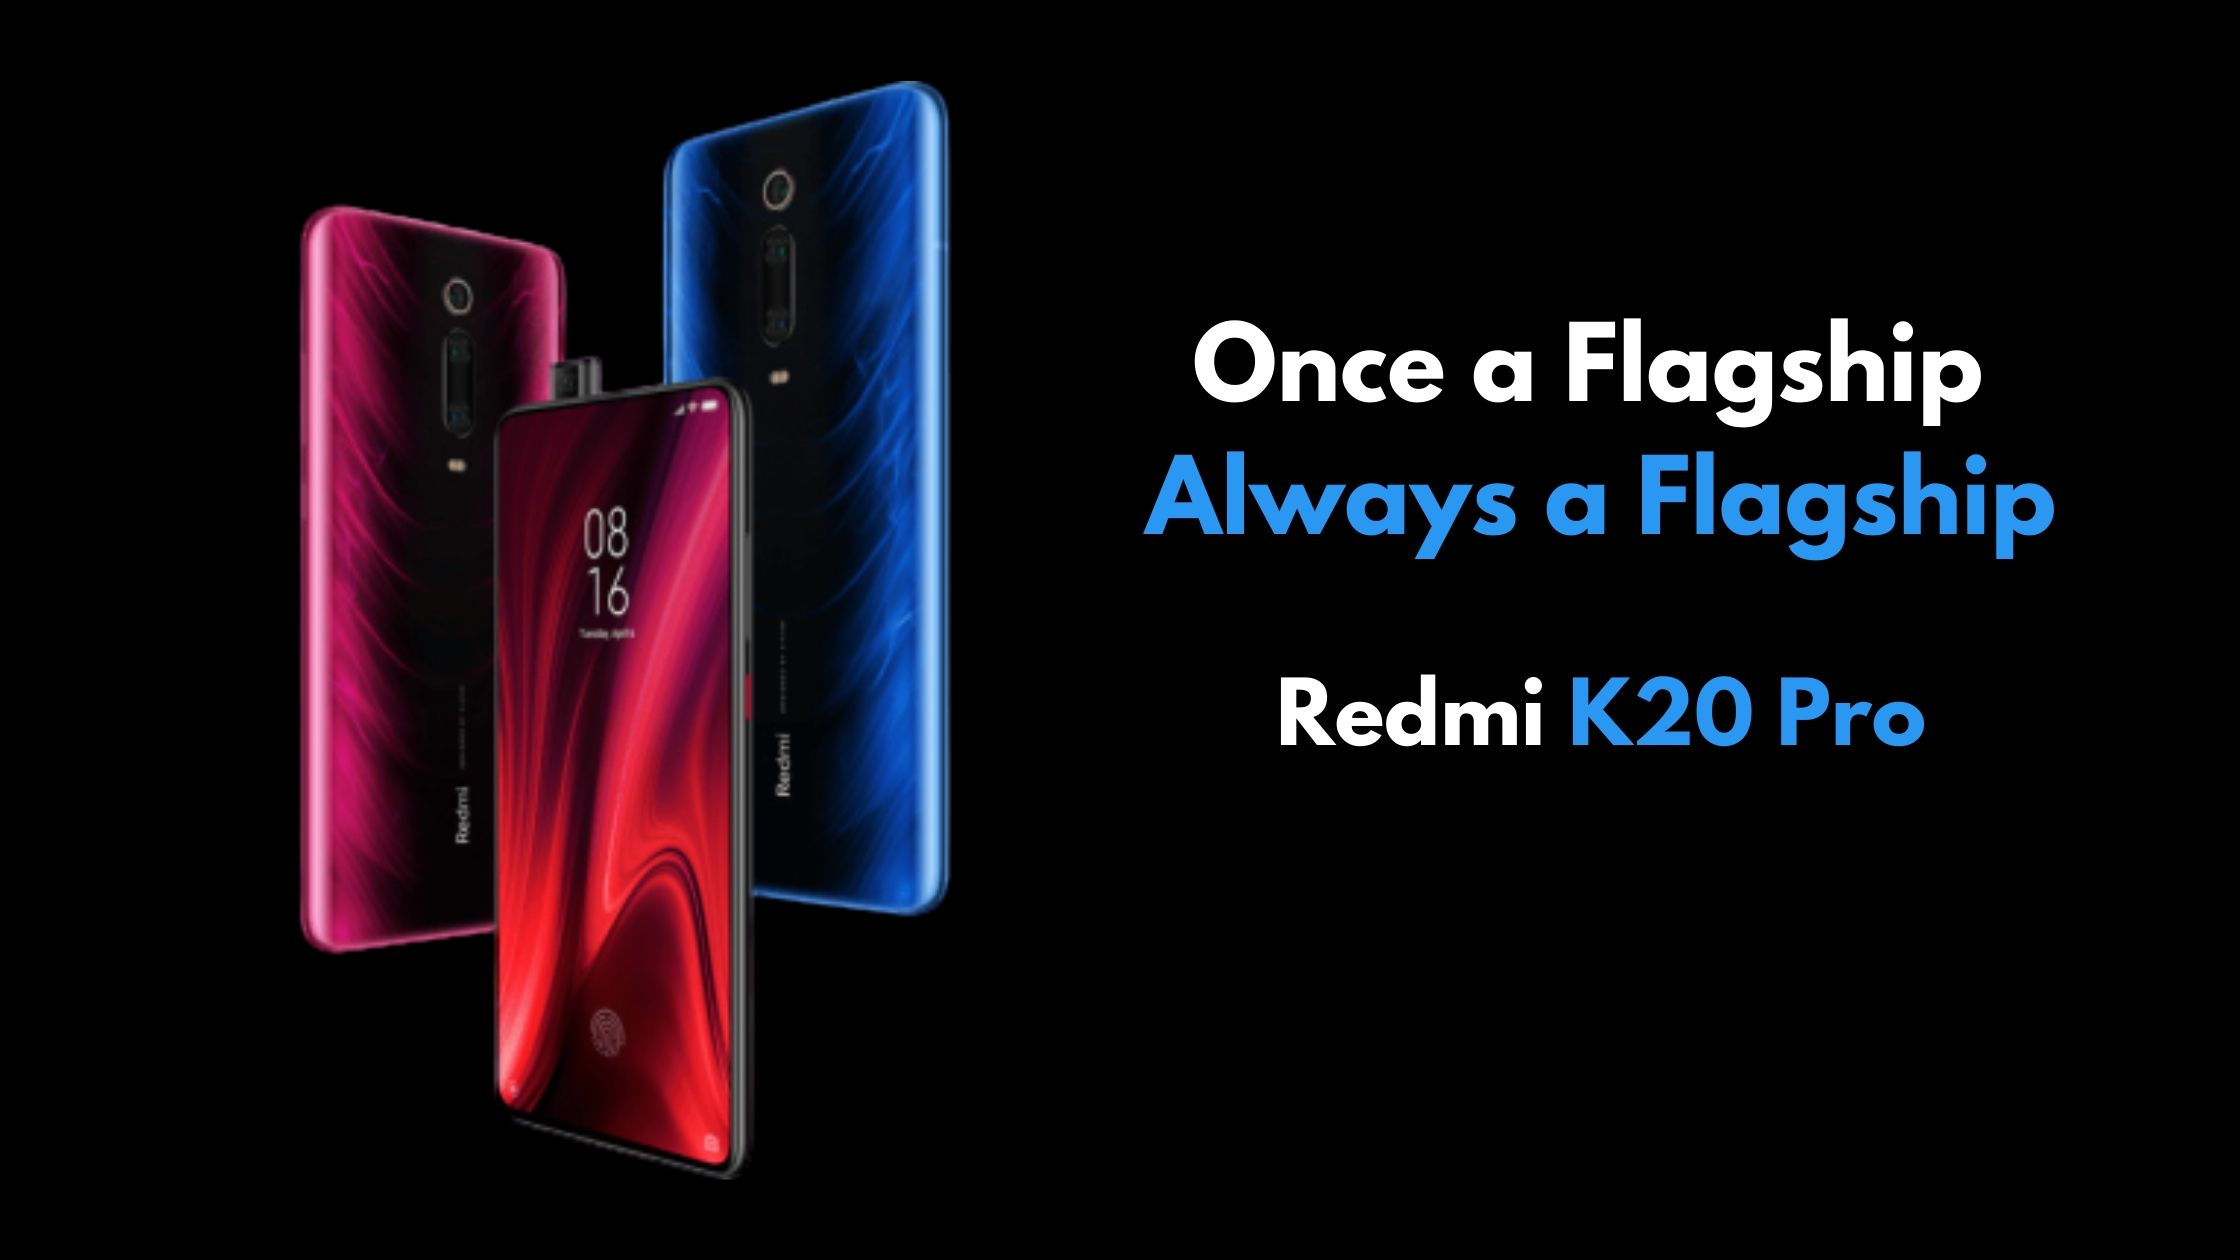 Buying Redmi K20 Pro in 2020?